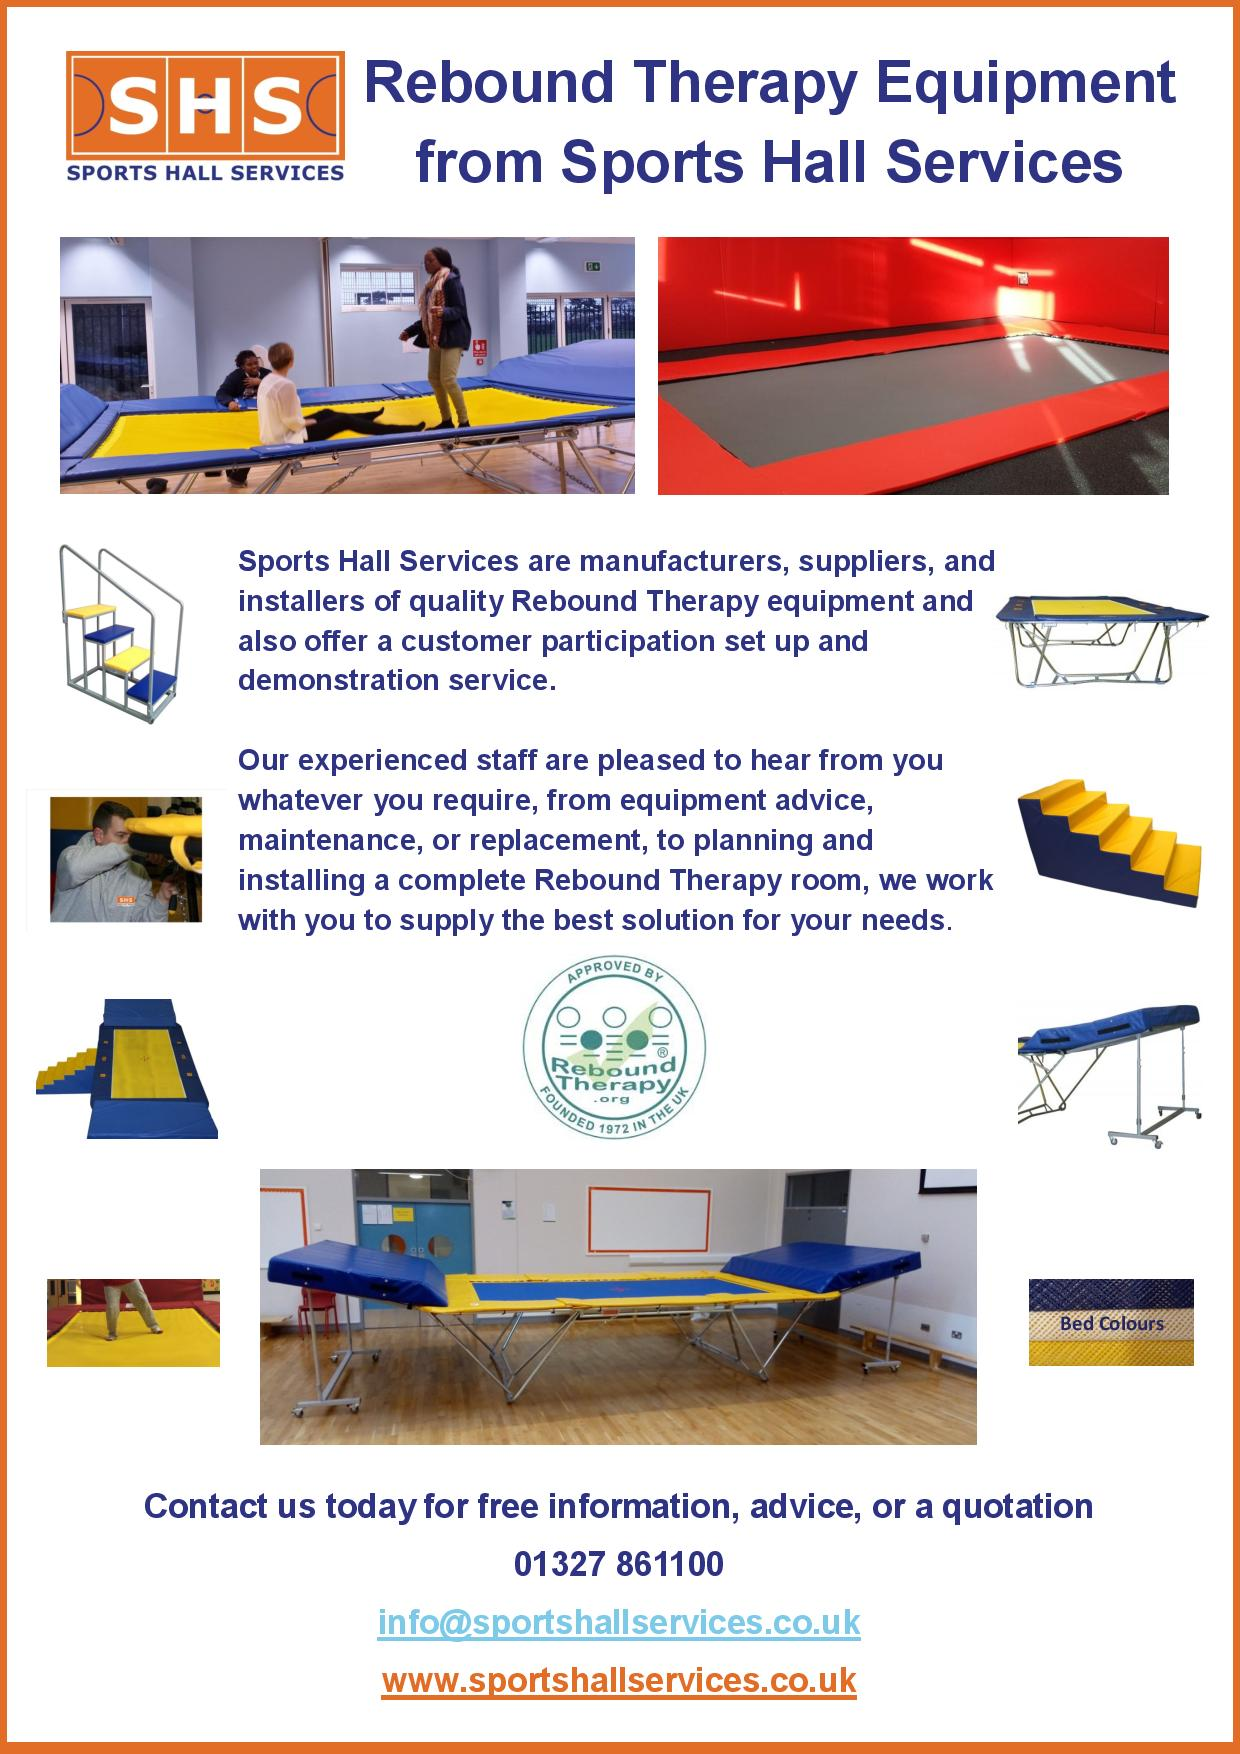 Sports Hall Services